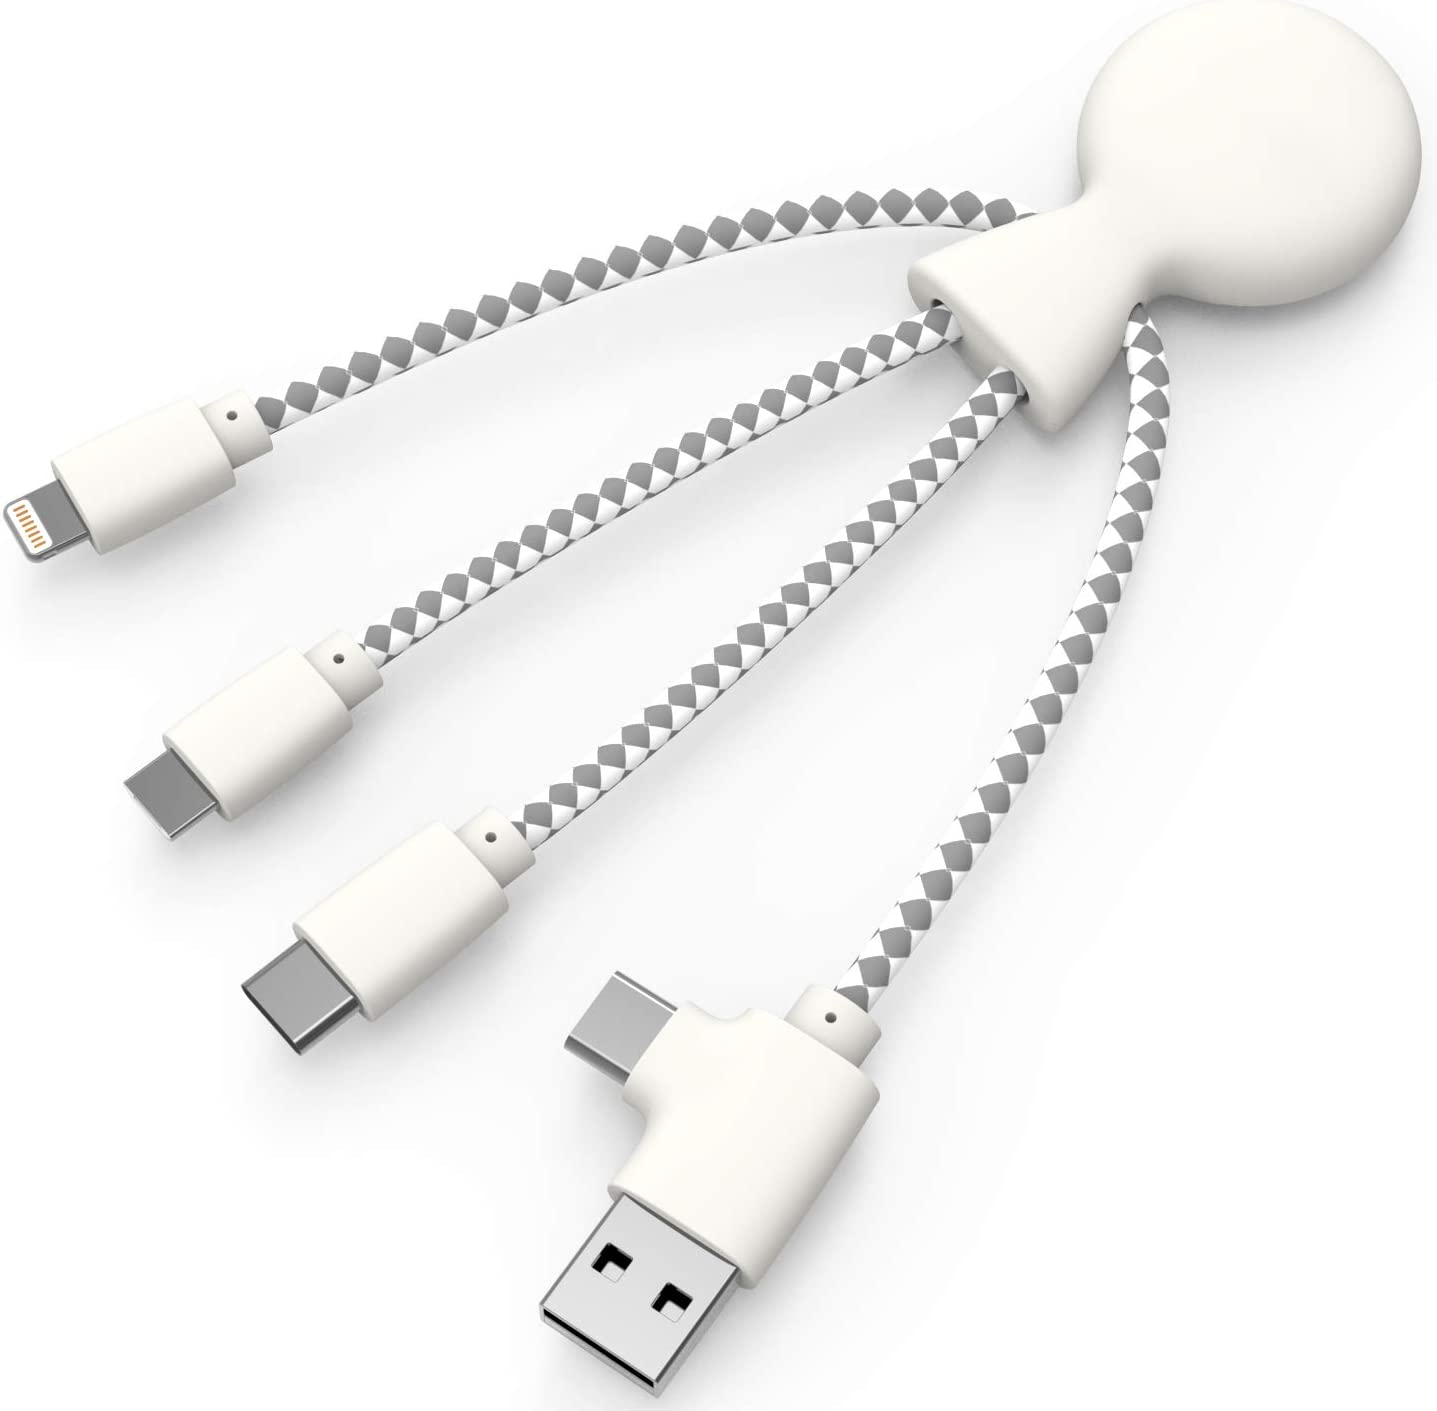 Dual-Power in Organic Wheat White Universal Charging Multi Tip Cable for Smartphones Mr Bio Eco-Friendly